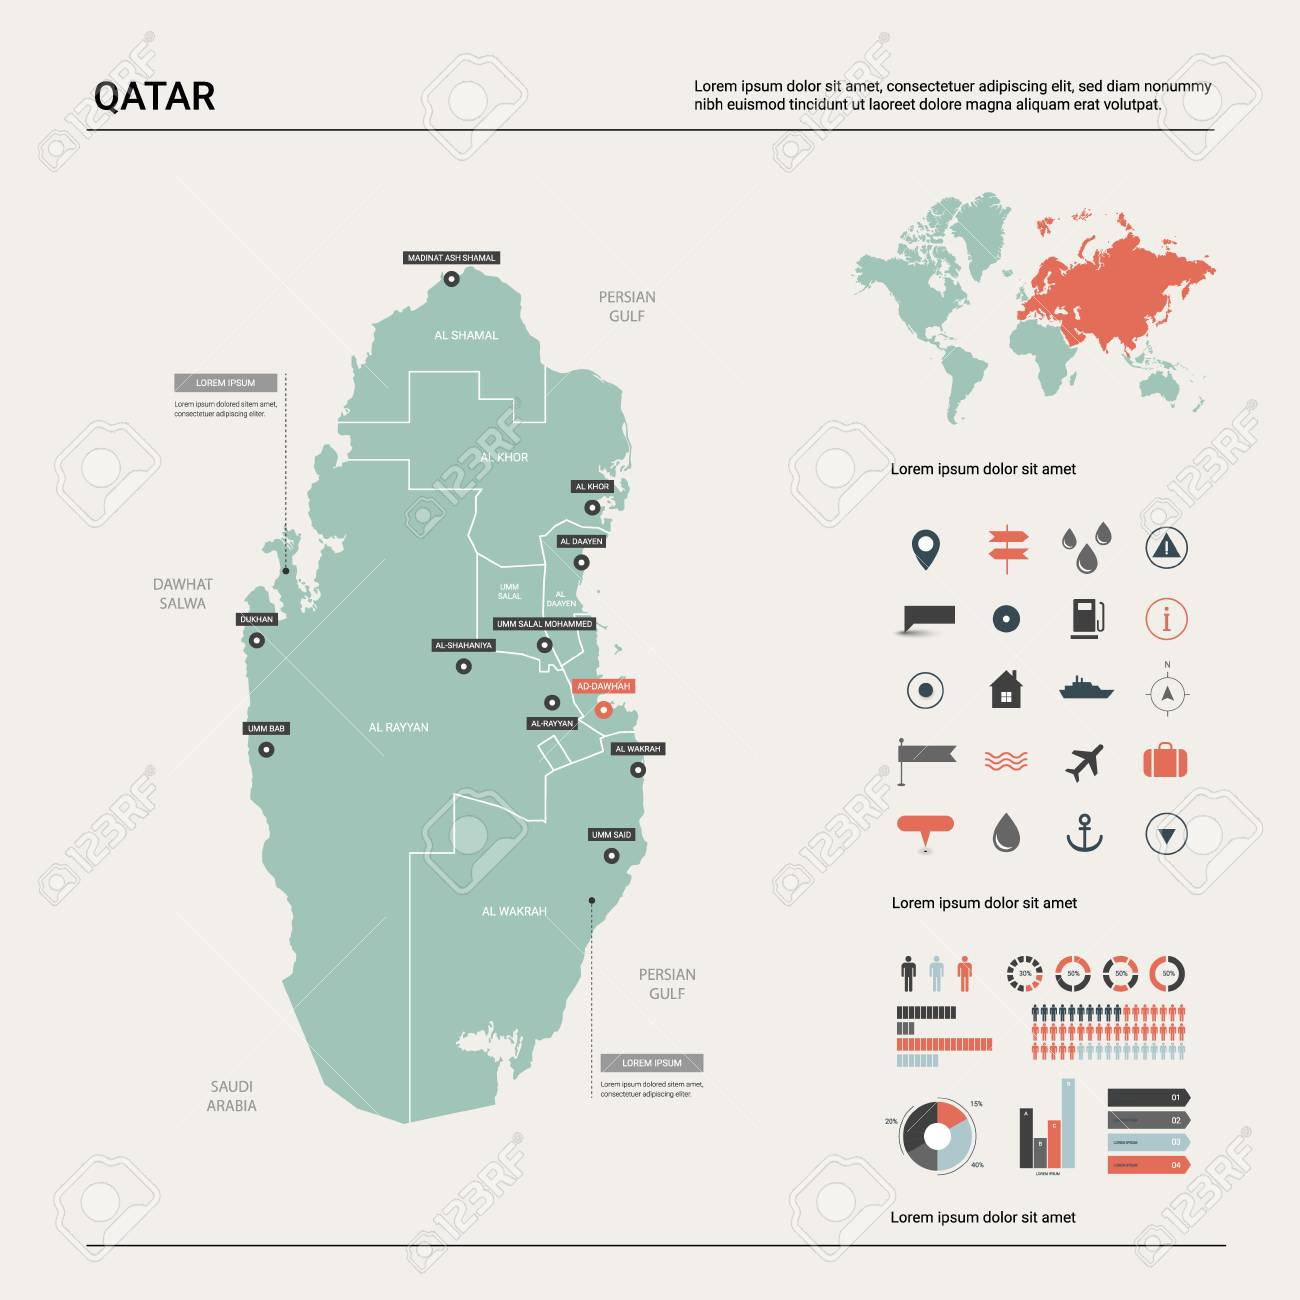 Vector map of Qatar. High detailed country map with division,.. on world map uae, world map in bangladesh, world map in norway, world map in chile, world map in nigeria, world map in china, world map kuwait, world map in arabic, world map in sri lanka, world map iraq, world map in france, world map in austria, world map jordan, world map in russia, world map in england, world map bahrain, world map in vietnam, world map doha, world map in english, world map in french,